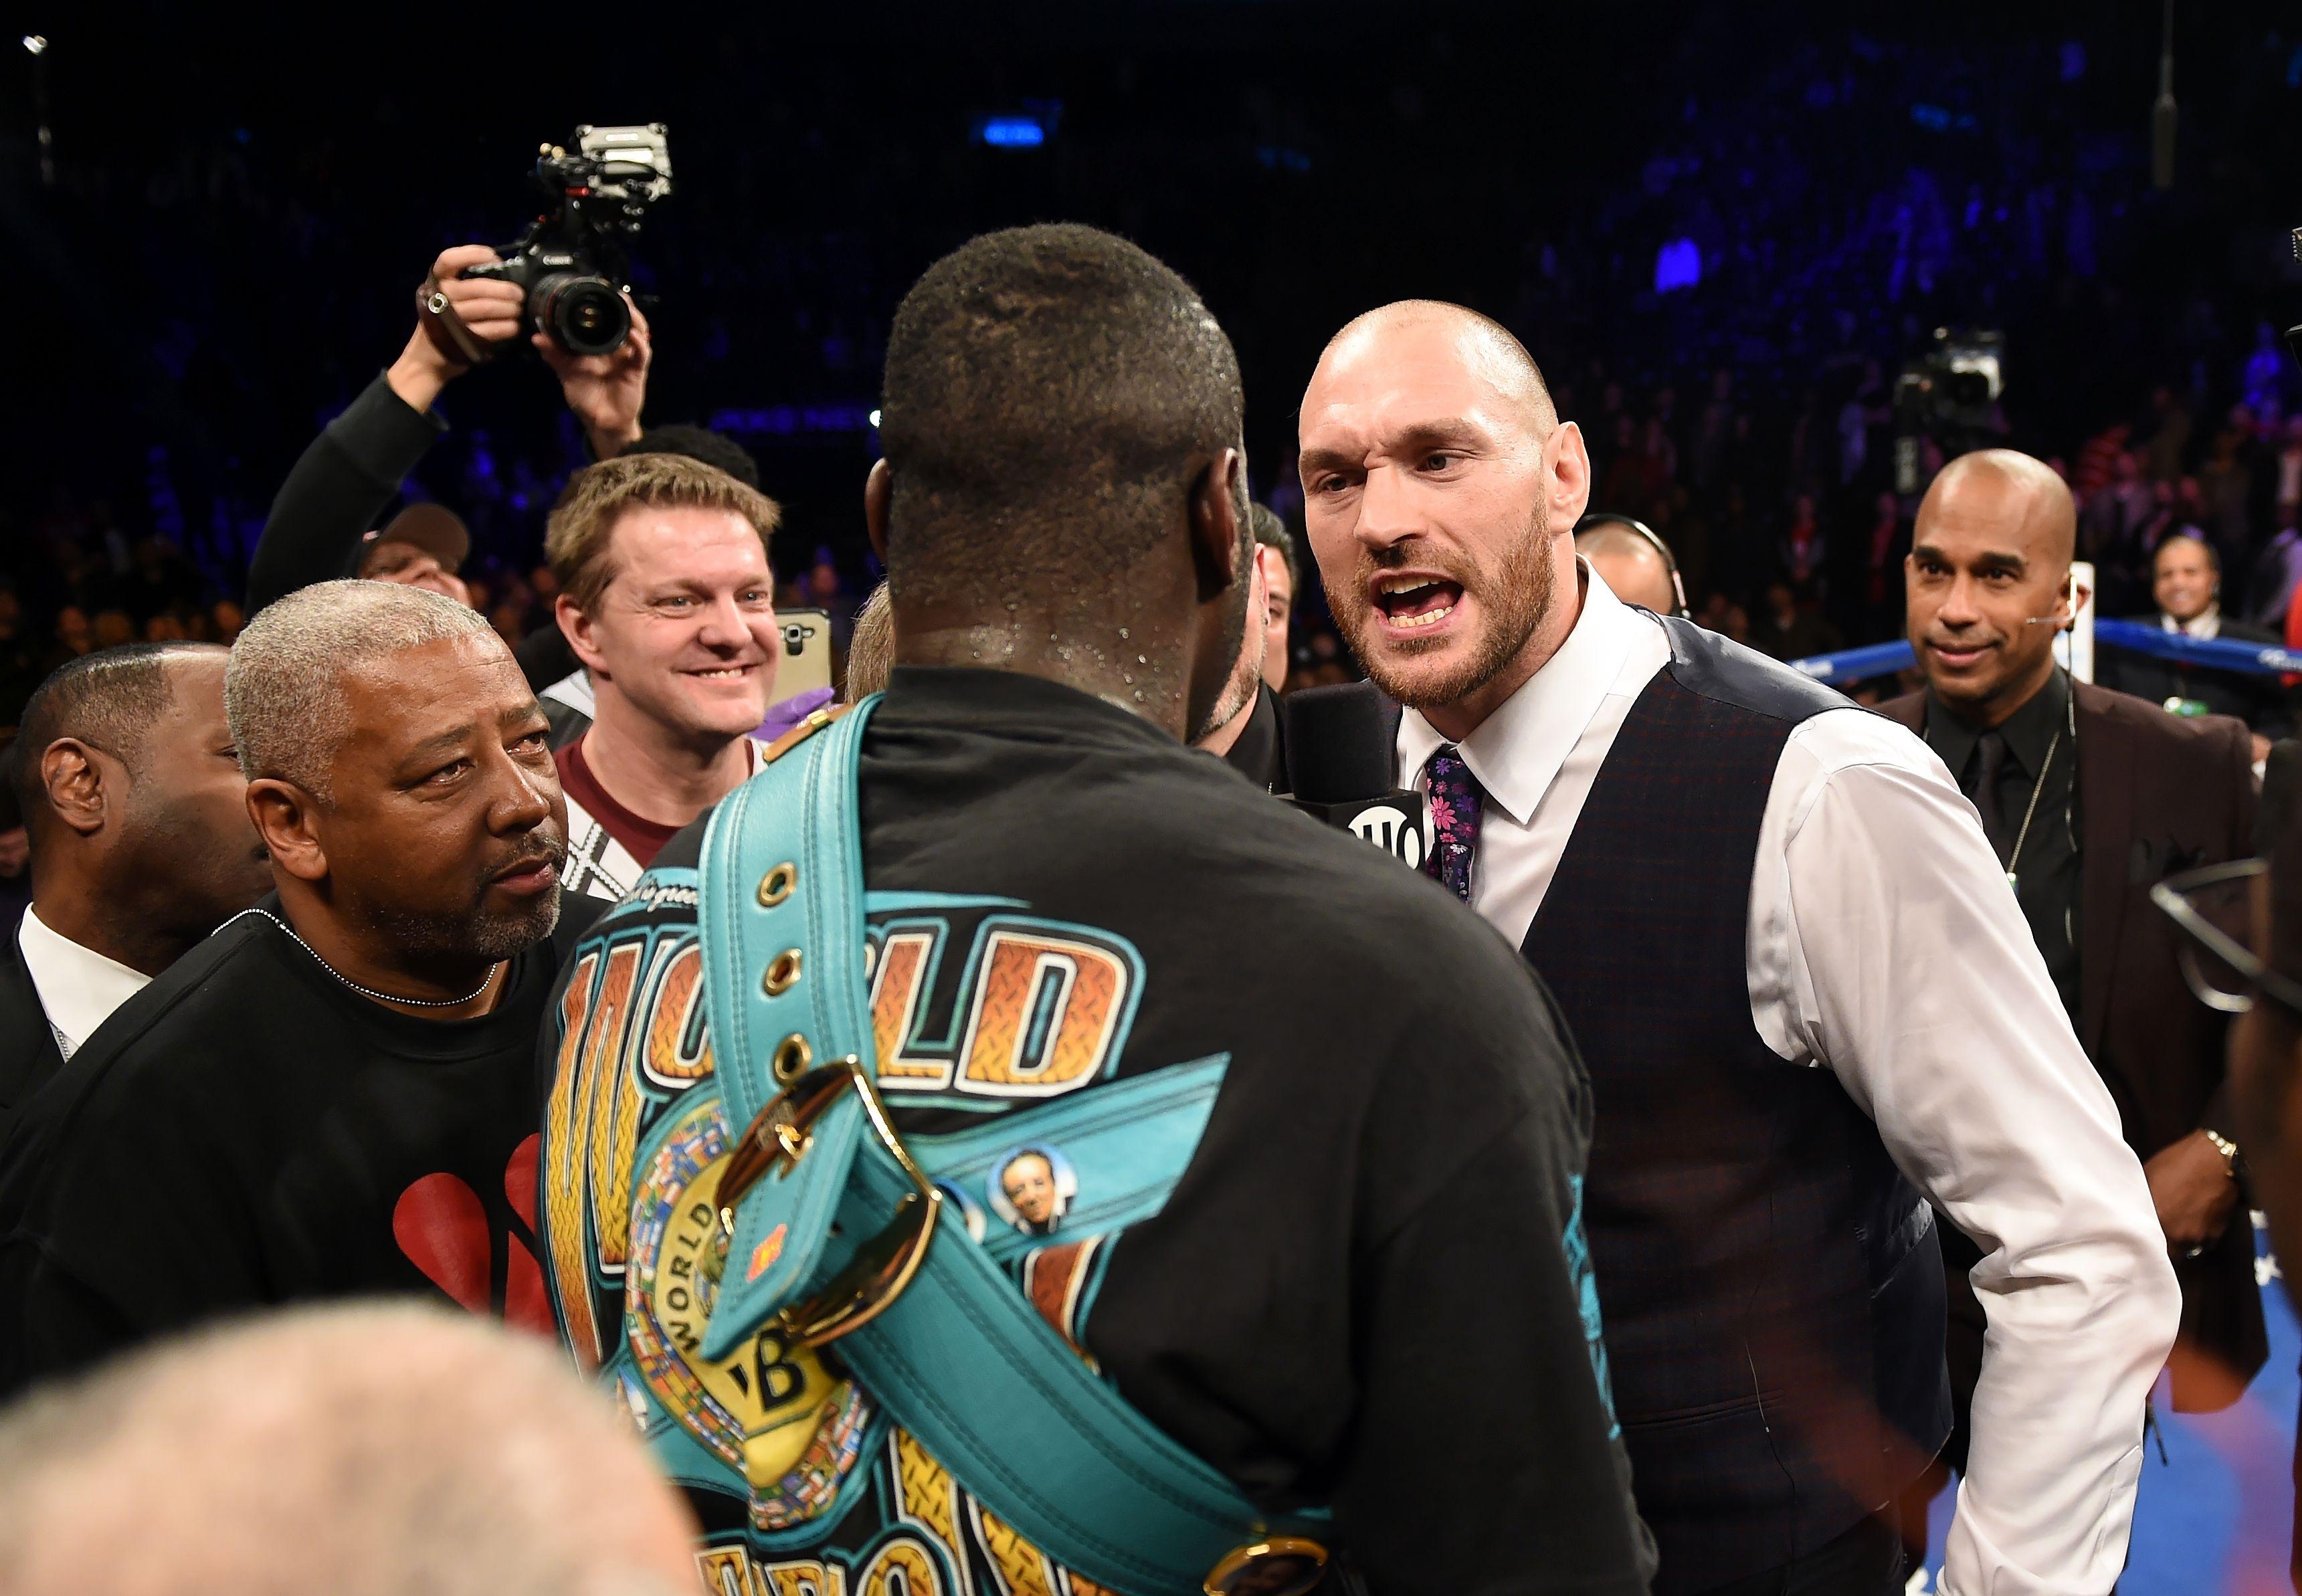 Wilder and Fury came face-to-face in January 2016 following the Bronze Bomber's win against Artur Szpilka